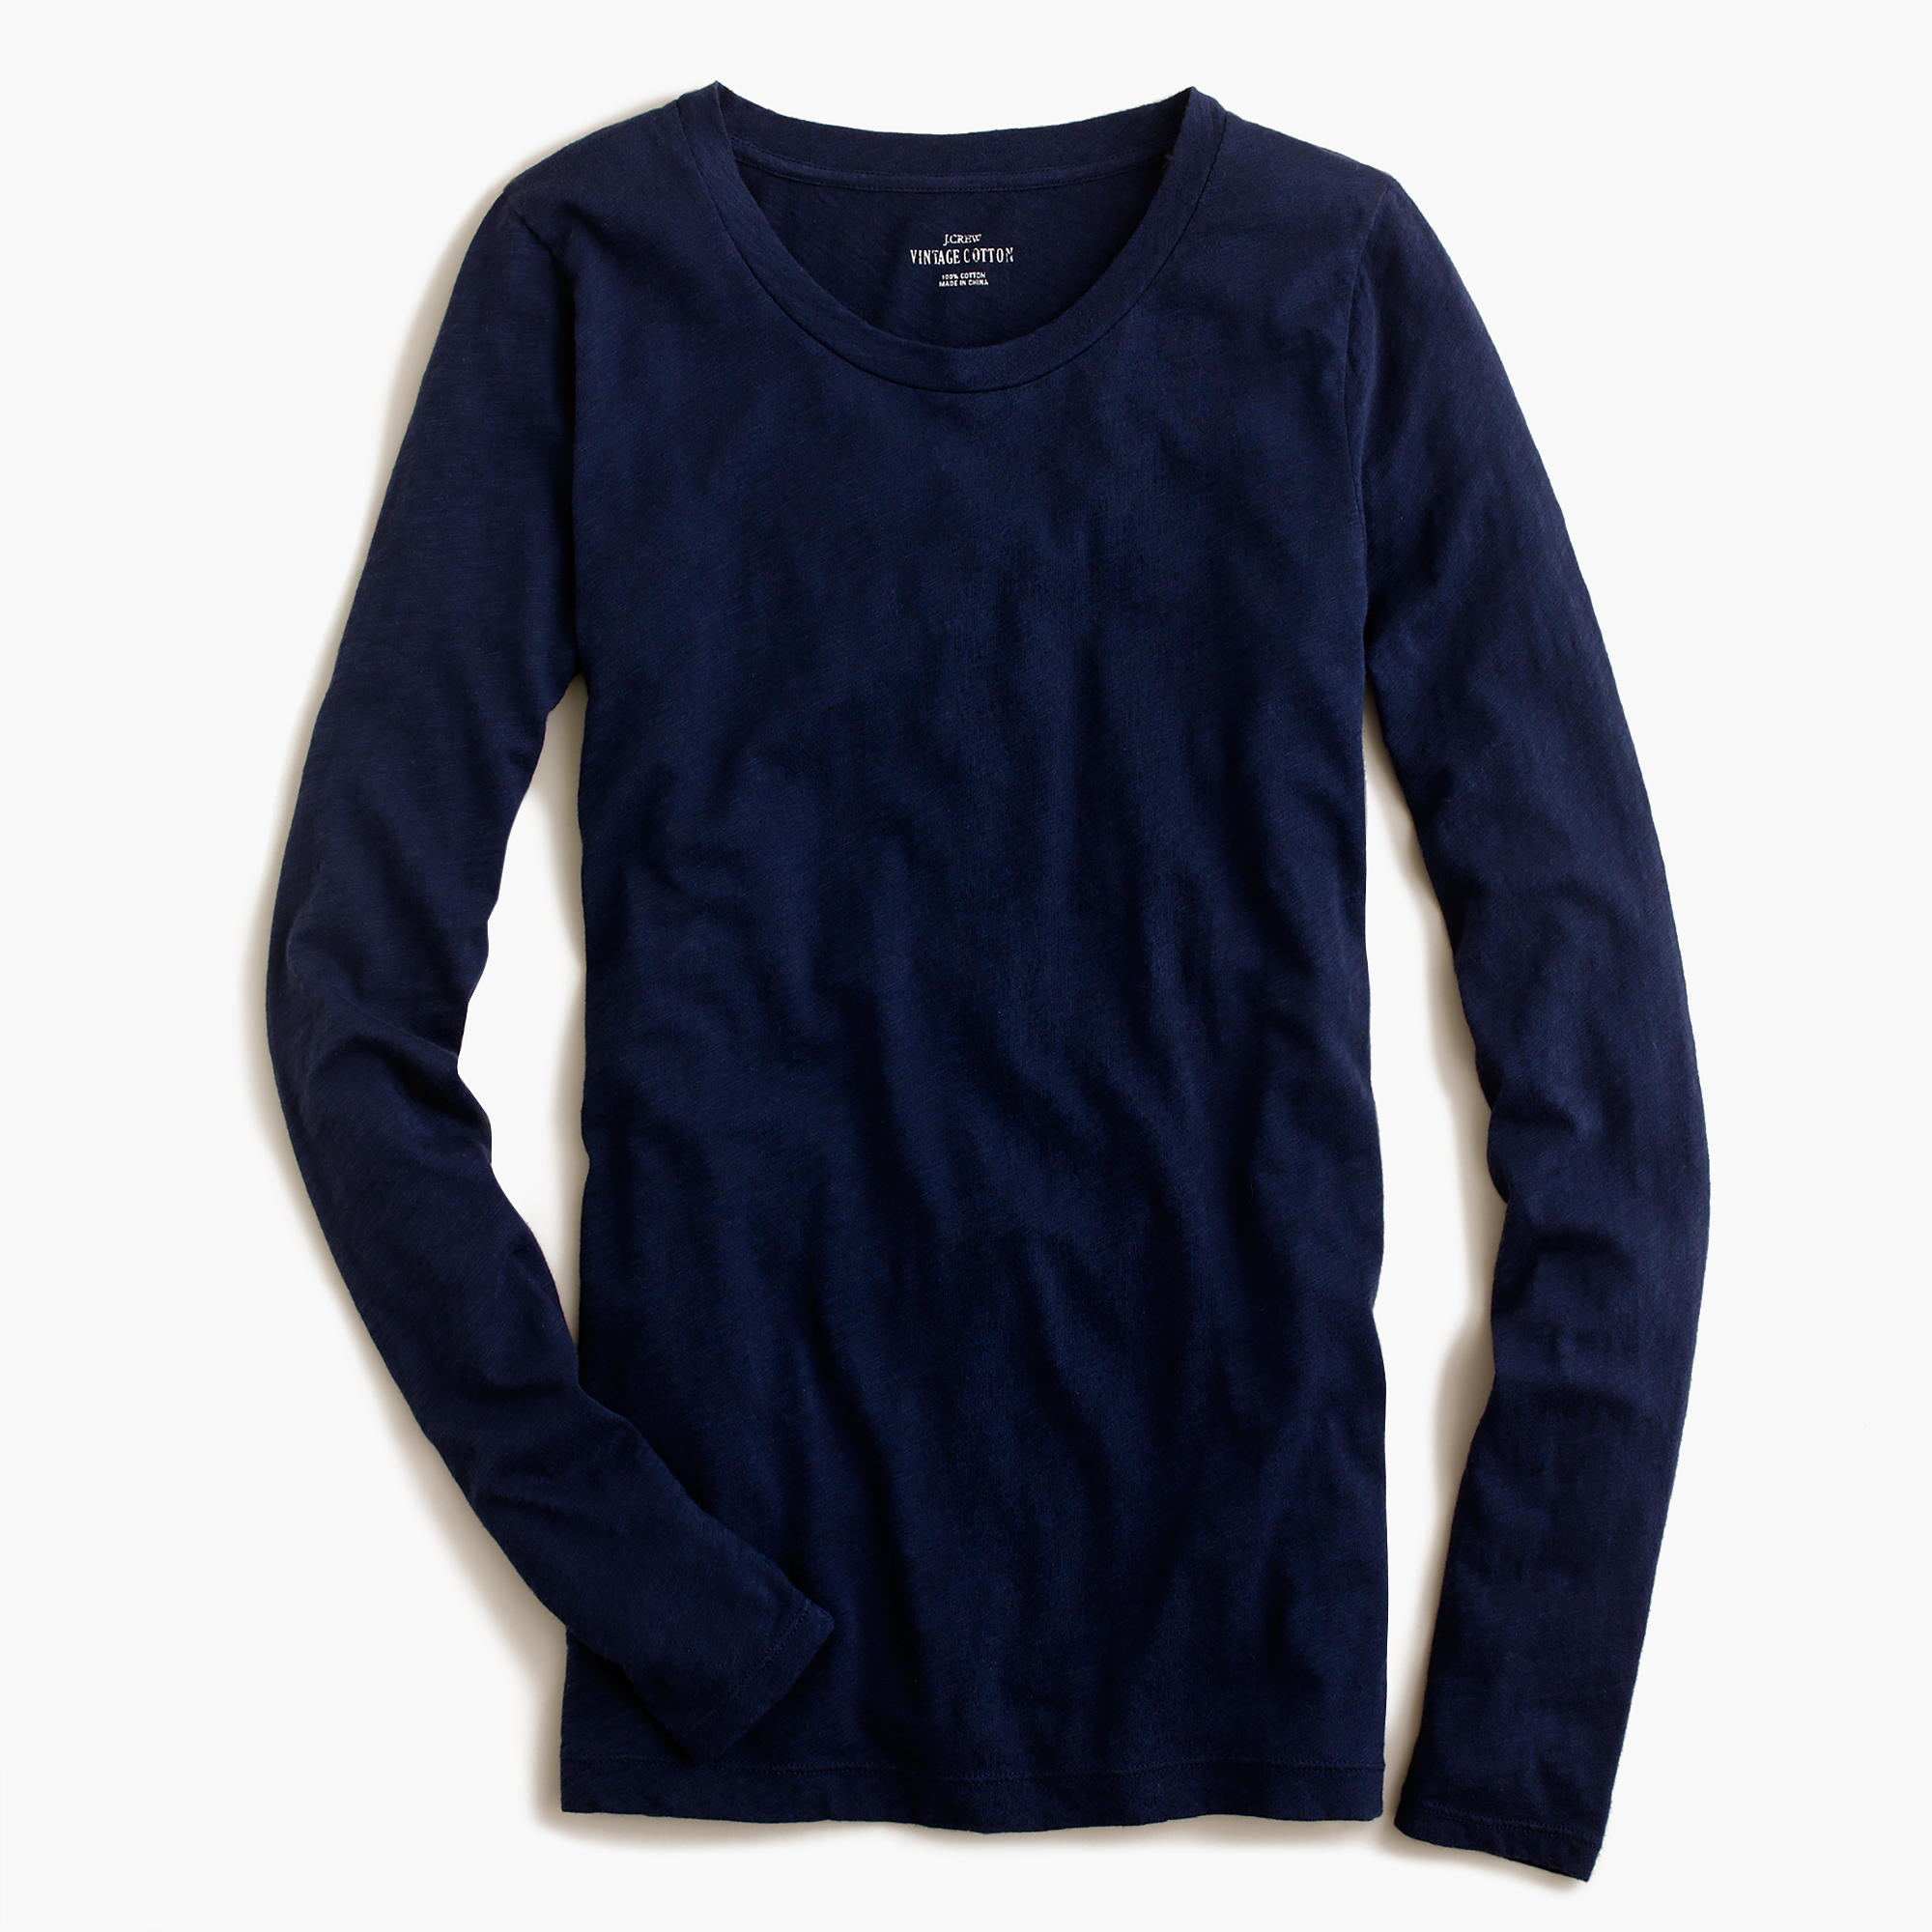 Vintage Cotton Long-Sleeve T-Shirt : Women's Tees | J.Crew